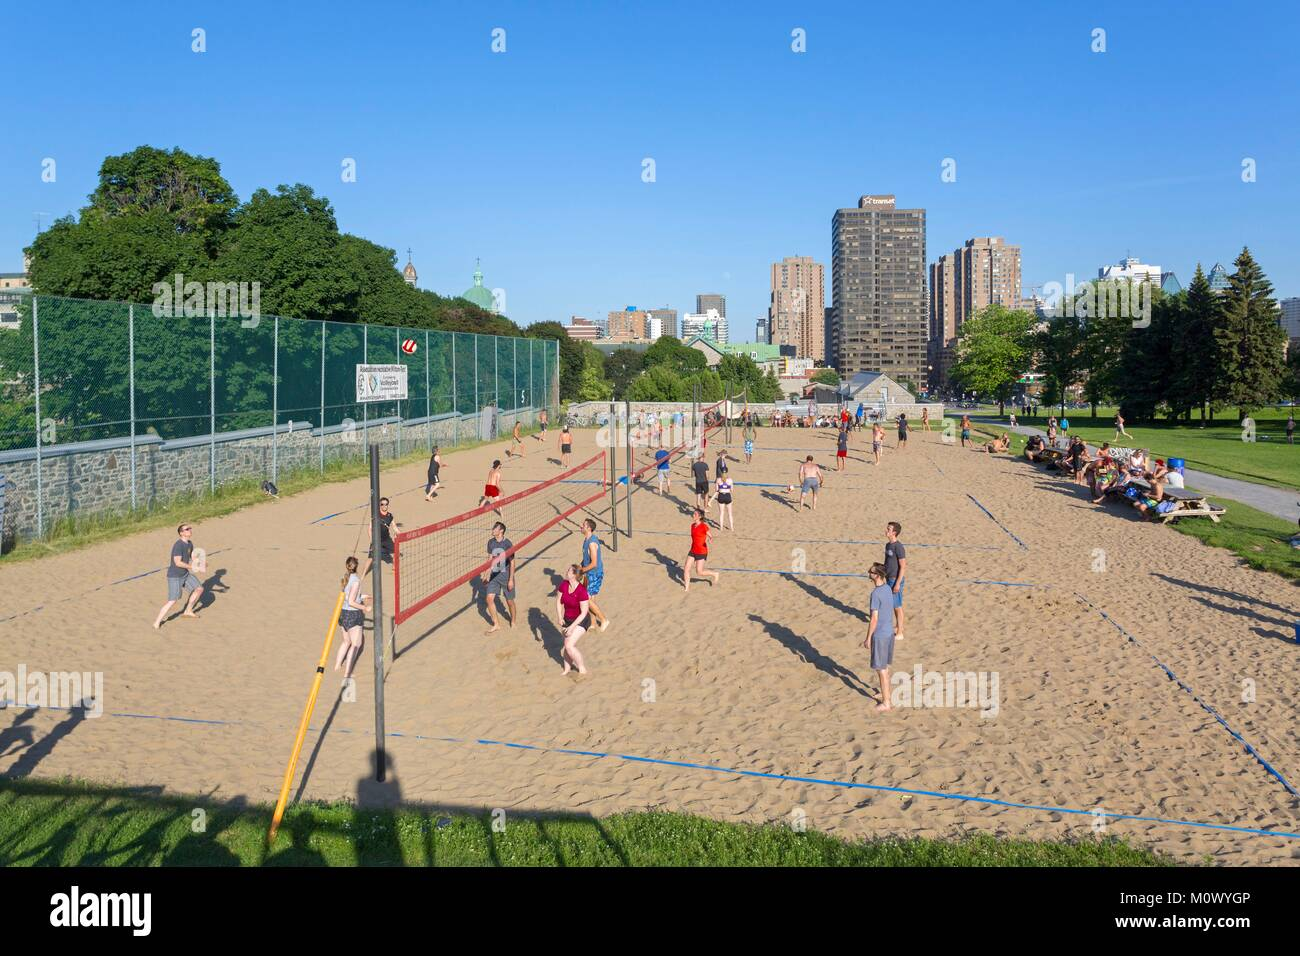 Canada,Quebec province,Montreal,Mount Royal,Jeanne-Mance Park in the heart of the city,beach volleyball courts - Stock Image